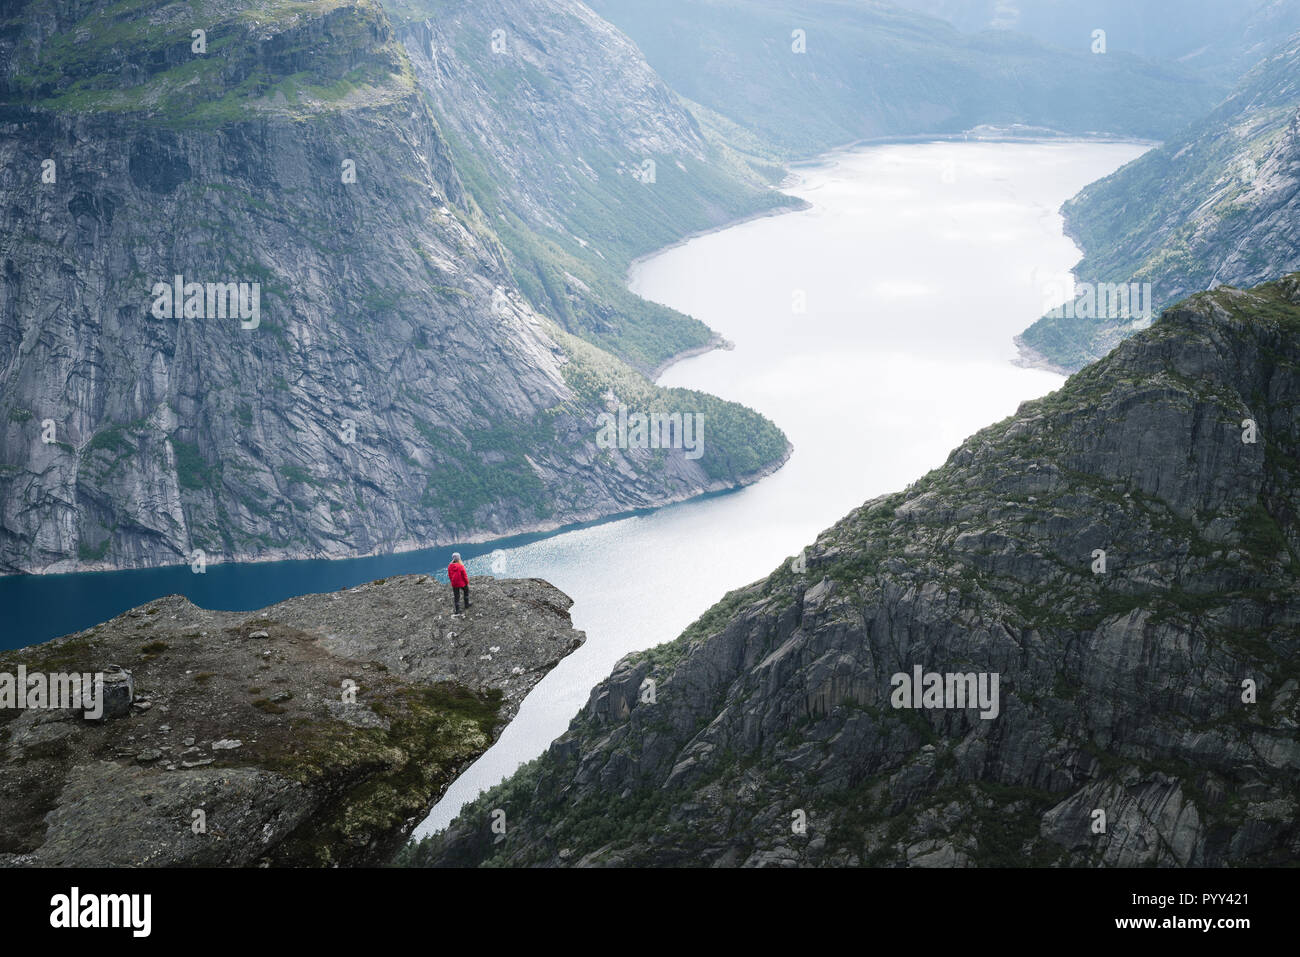 Trolltunga - cliff rock above lake Ringedalsvatnet in Norway. Girl tourist enjoys a beautiful view - Stock Image